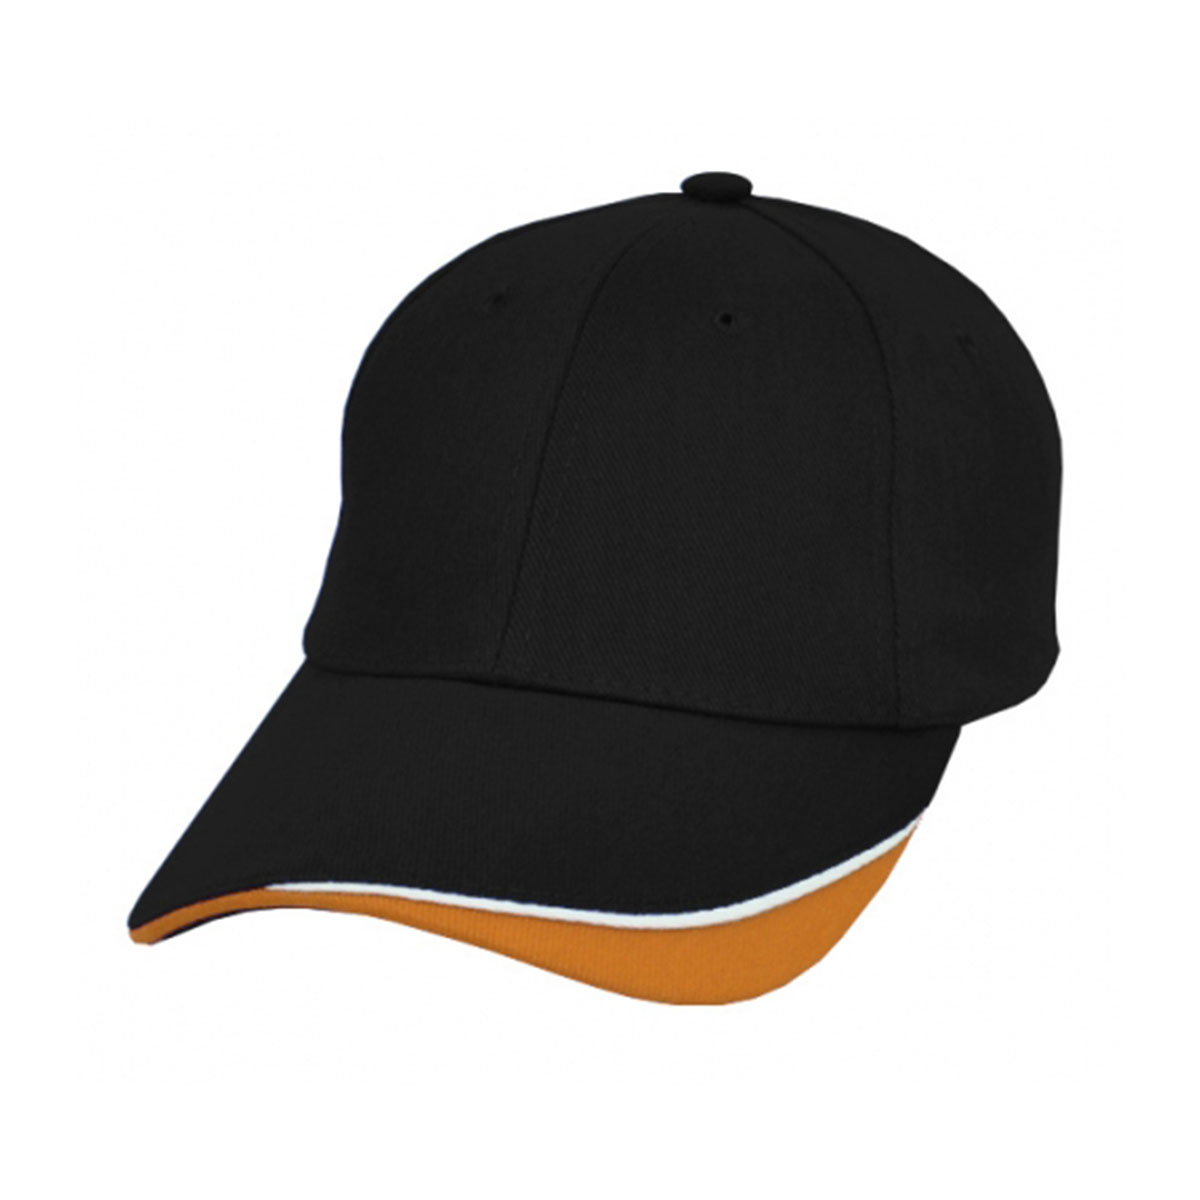 Razor Cap-Black / White / Orange